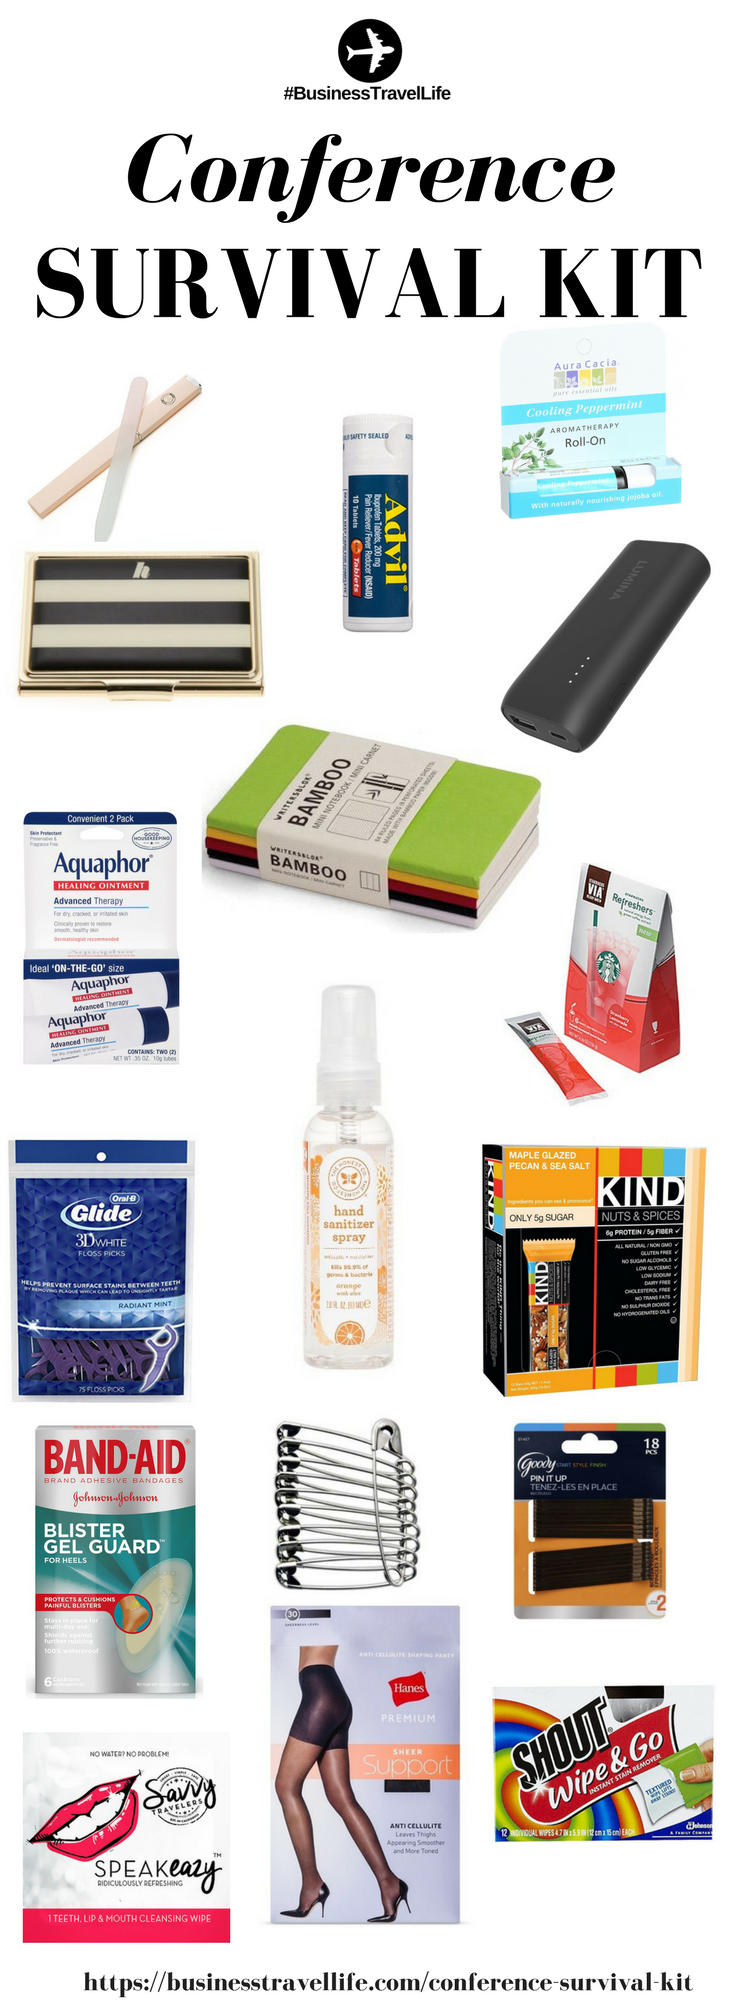 Conference Survival Kit Business Travel Life